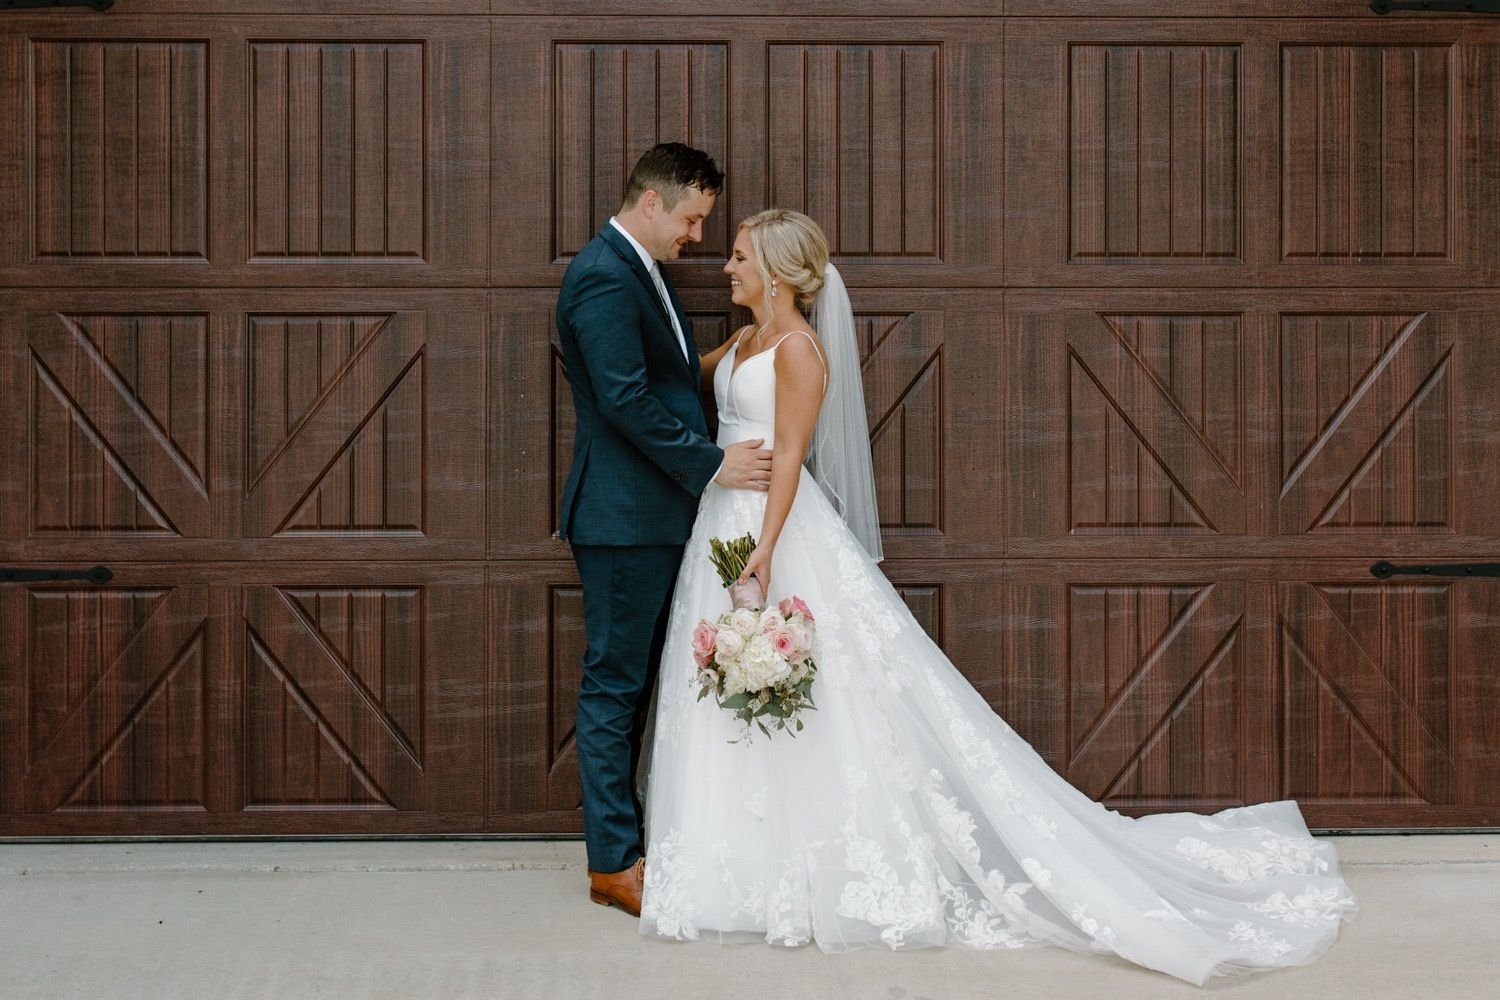 Cat Ruchalski Photography's Ceremony & Reception Coverage (Wedding Package) Photo